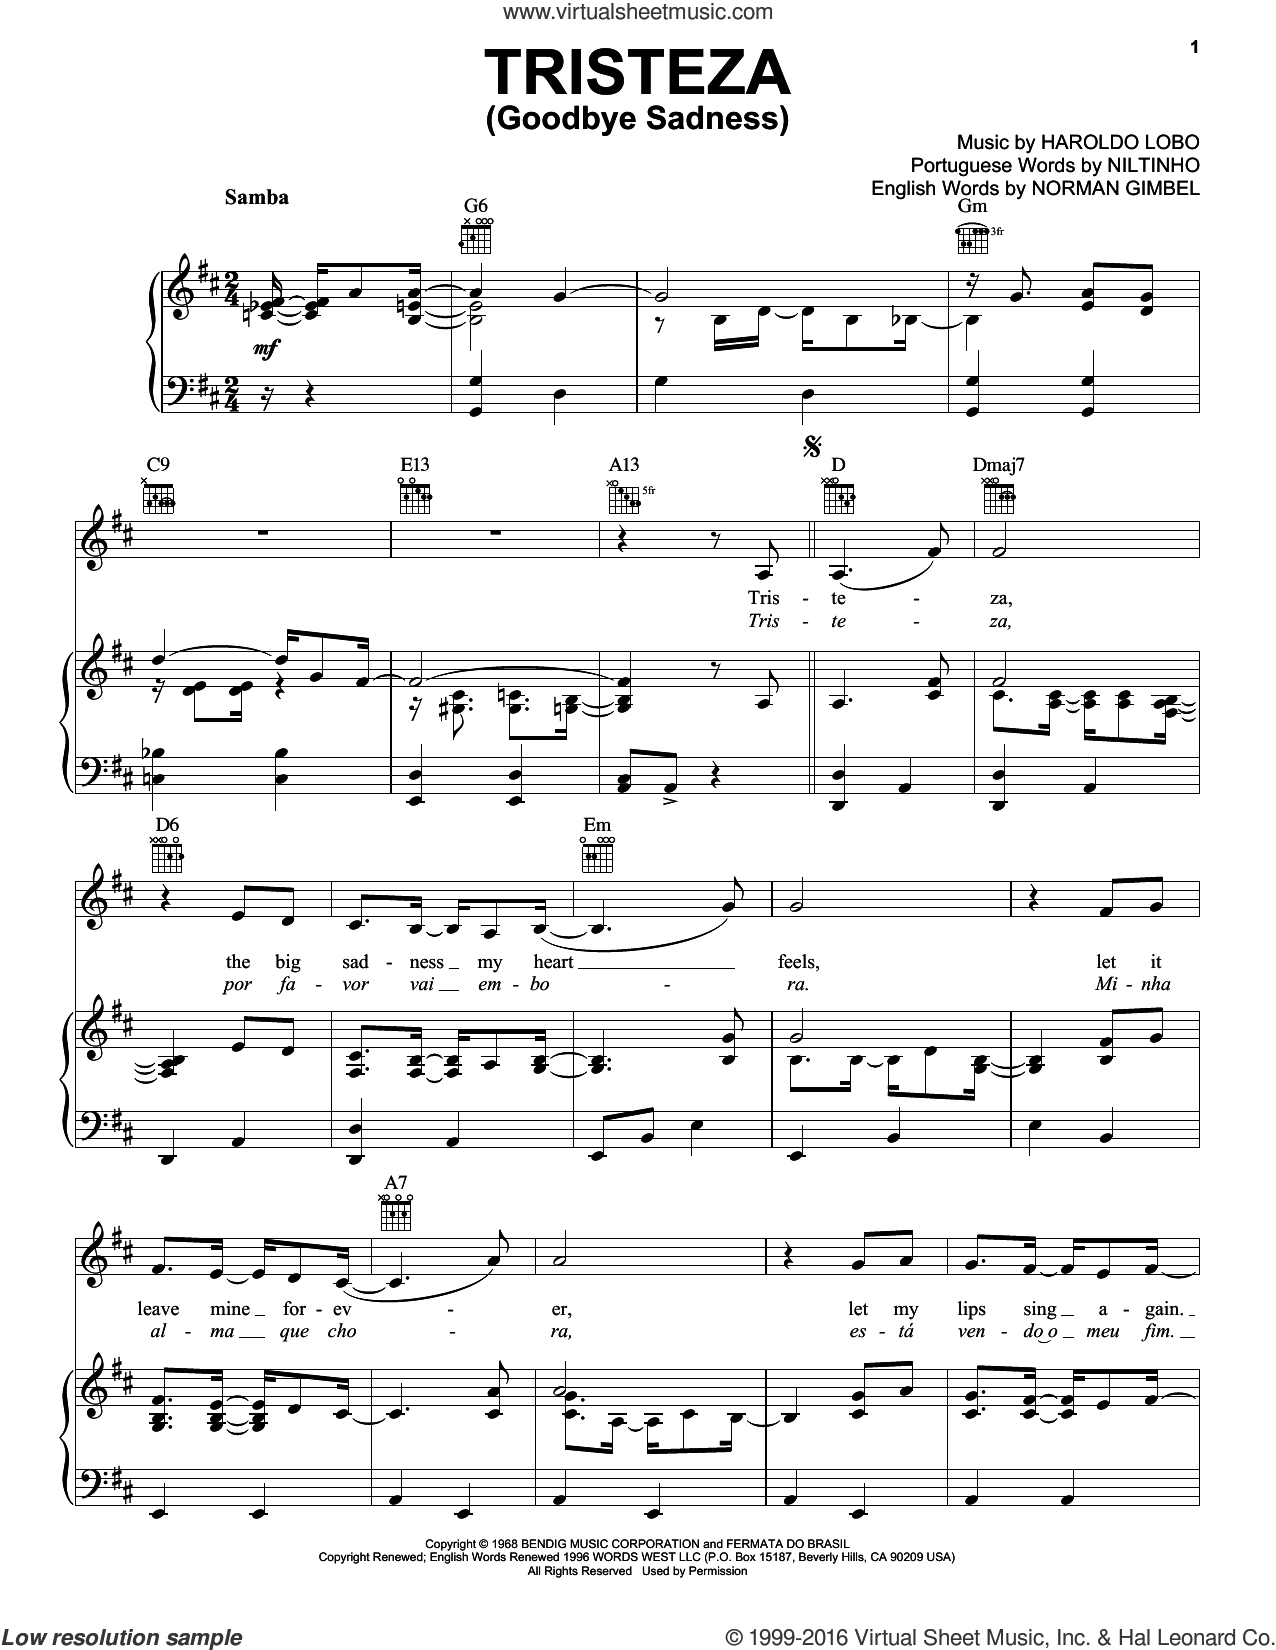 Tristeza (Goodbye Sadness) sheet music for voice, piano or guitar by Niltinho, Haroldo Lobo and Norman Gimbel, intermediate skill level